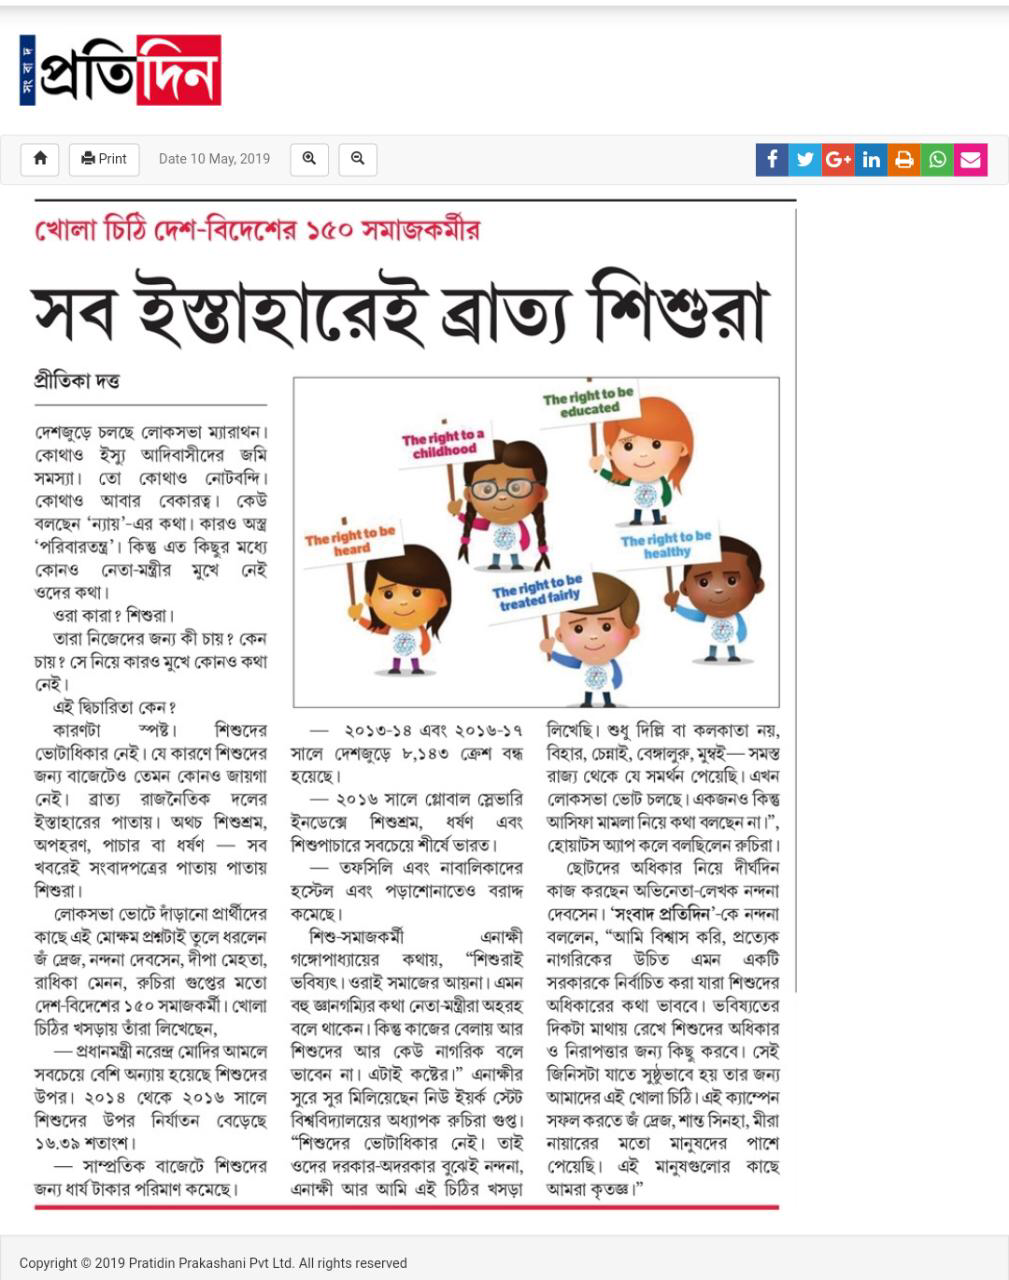 Pratidin Prakashani    May 10, 2019 -  click here for full article (external link)